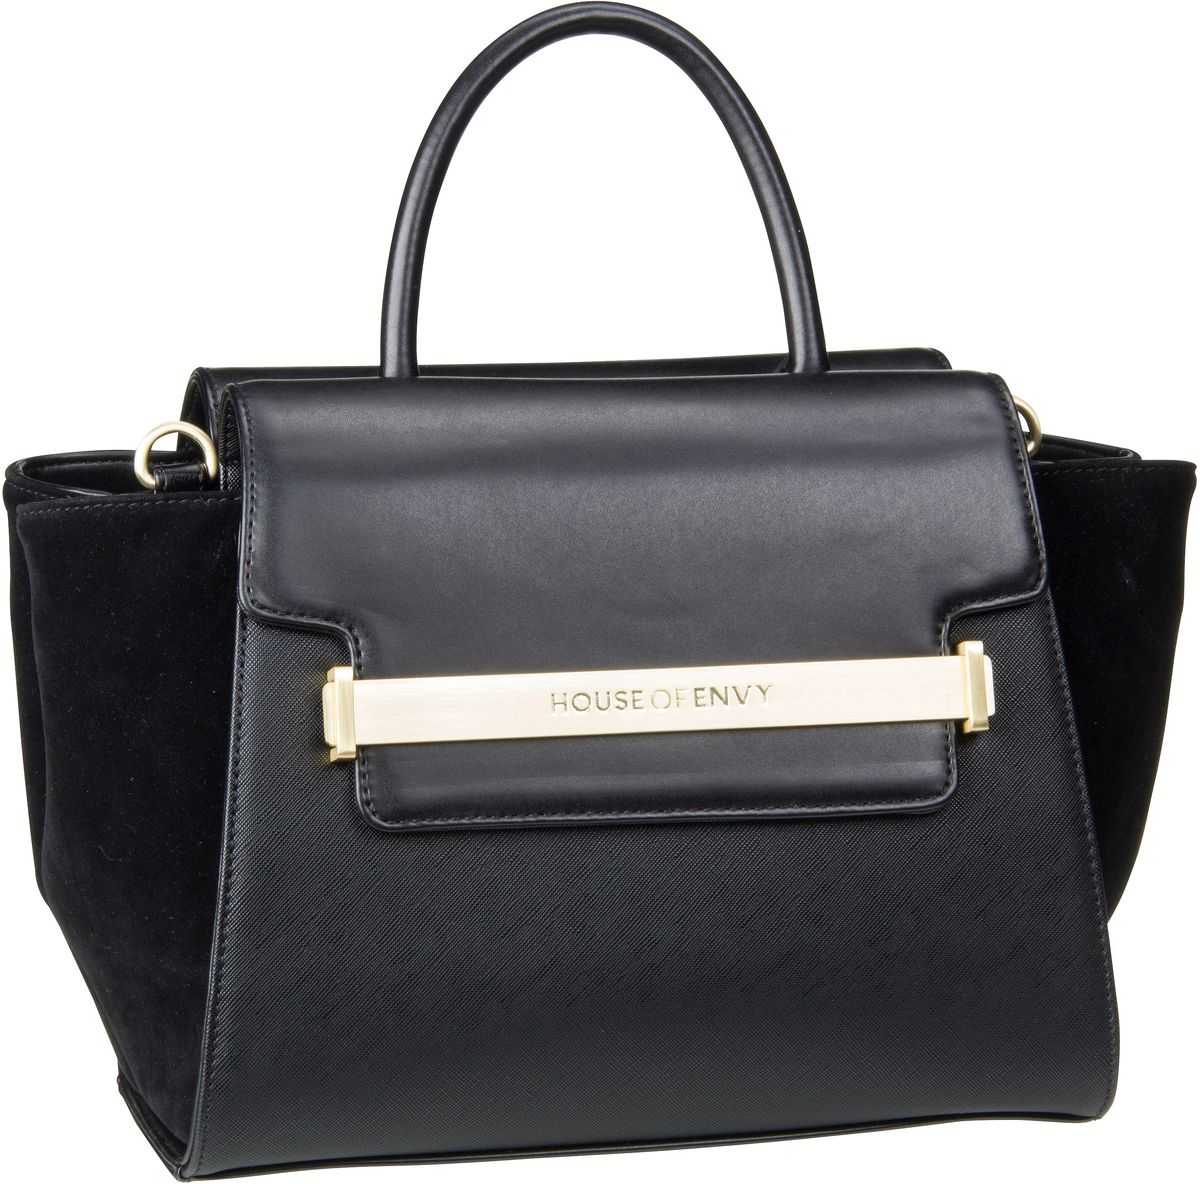 House of Envy Lovable Black - Handtasche